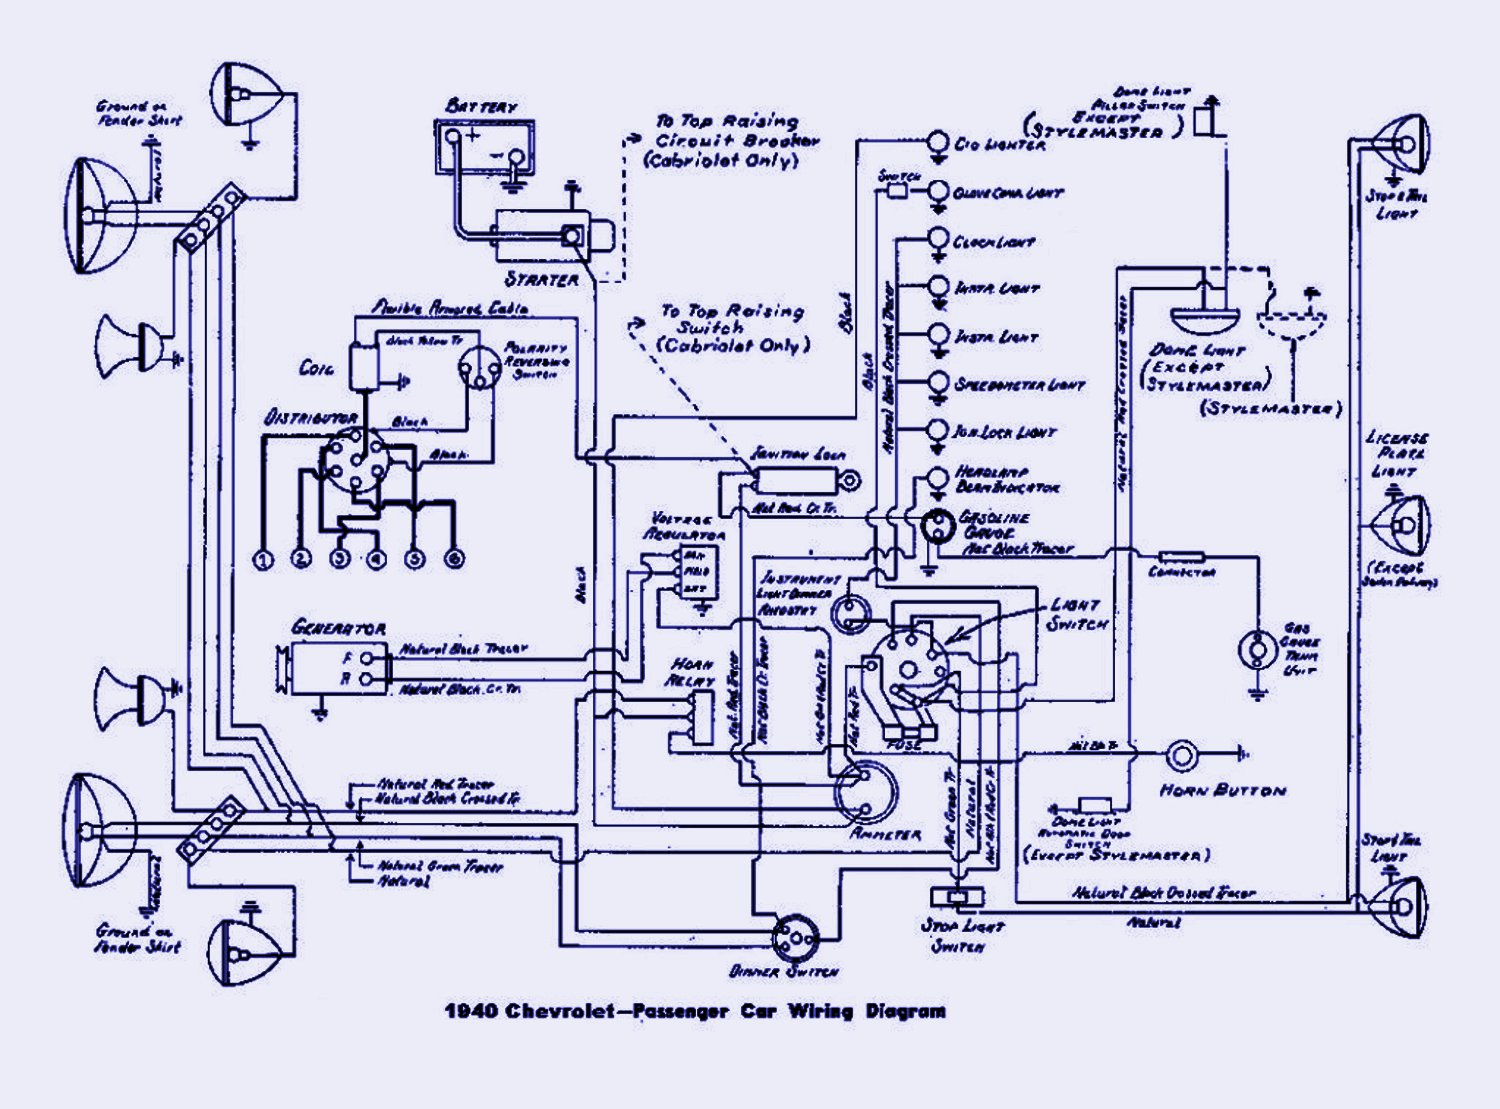 Radio Wiring Diagram 1969 Ford Mustang Wiring Diagram Chevrolet Chevy